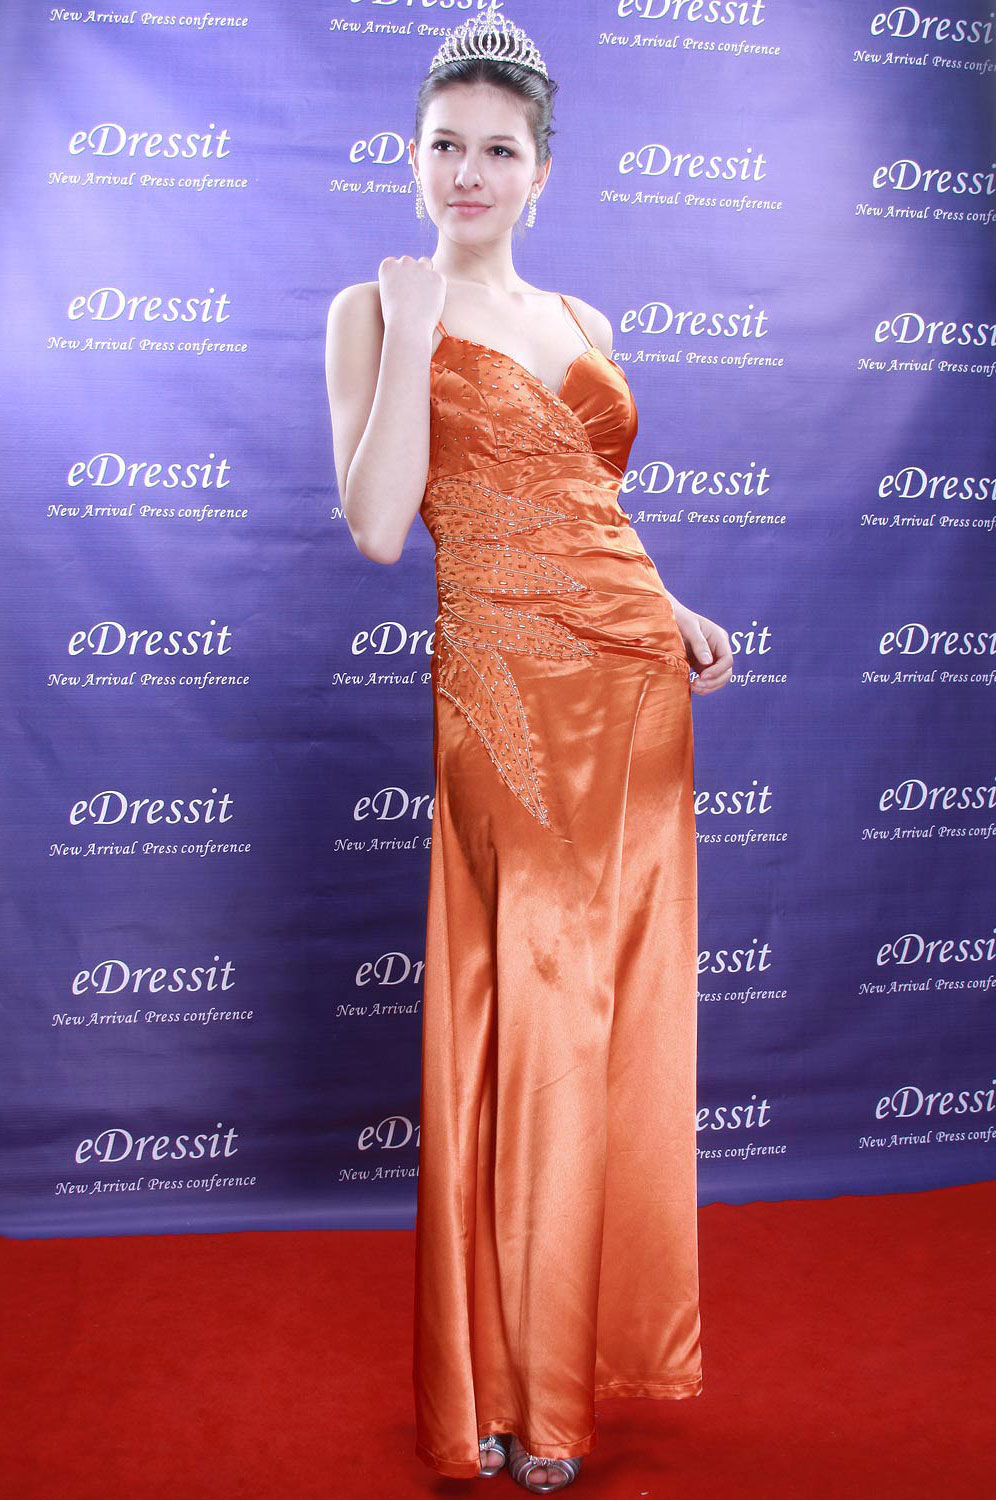 eDressit New Elegant Gown Evening Dress (00061210)